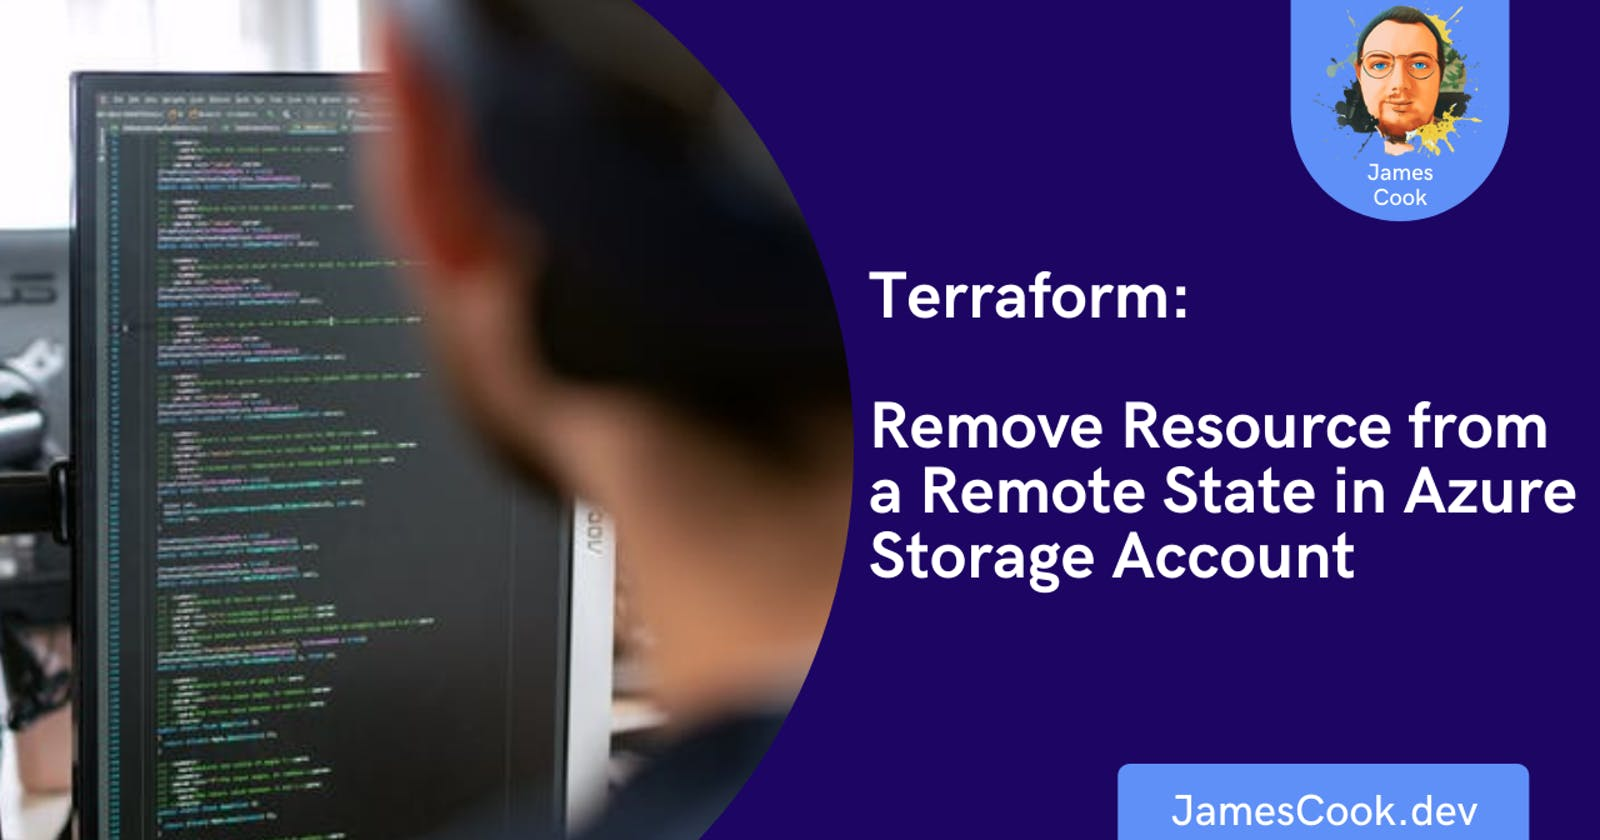 Terraform: Remove Resource from a Remote State in Azure Storage Account